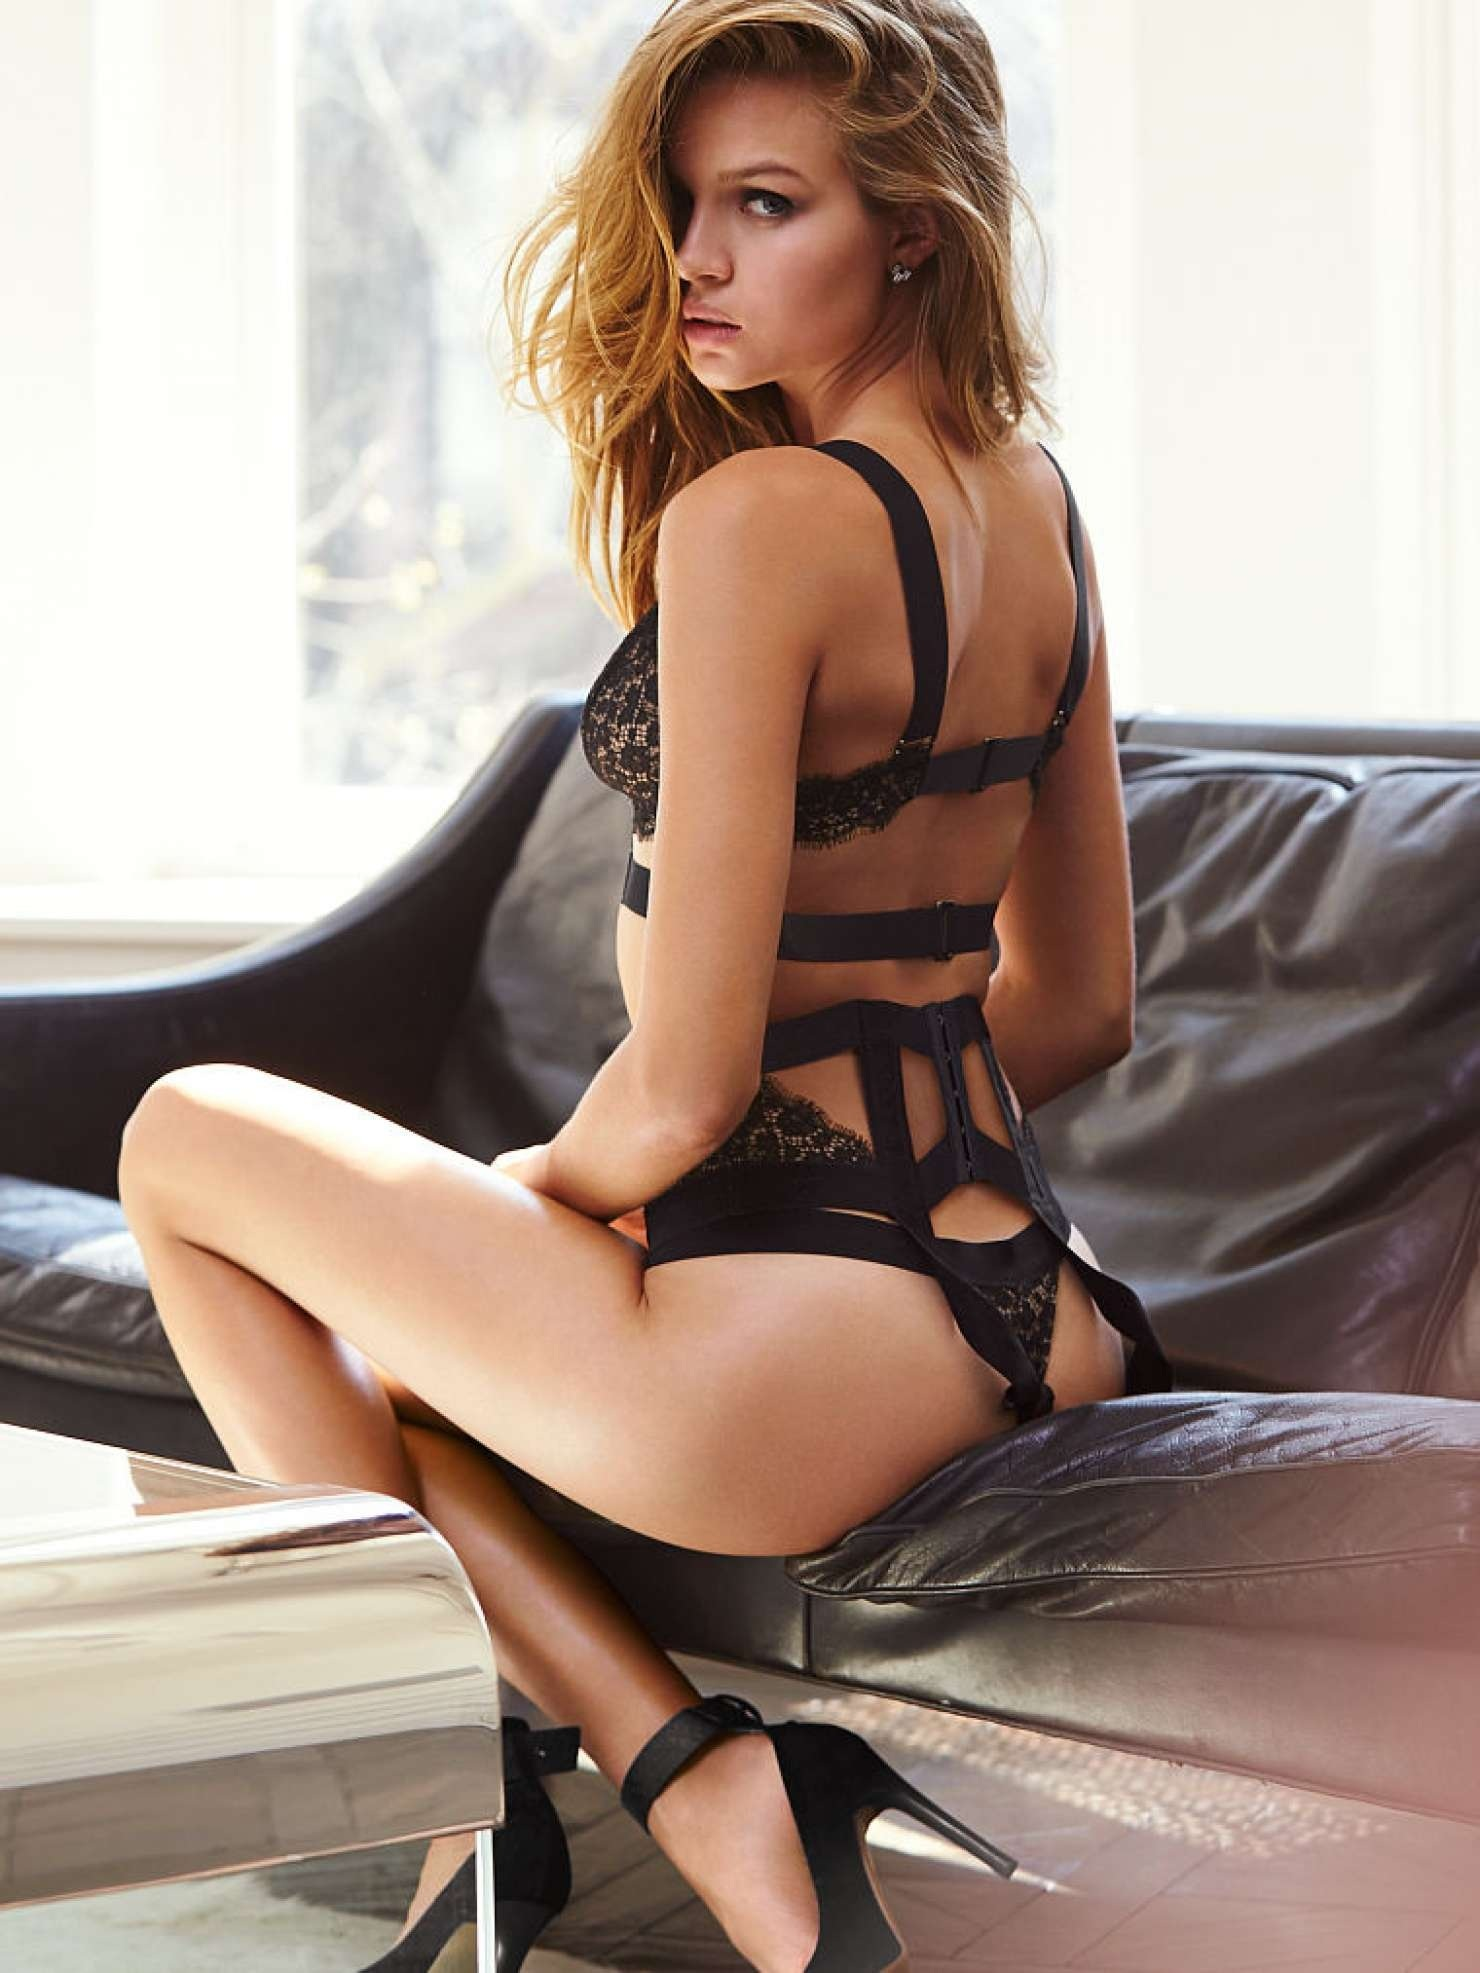 Josephine Skriver Victorias Secret Photoshootshoot June Victoria Secret